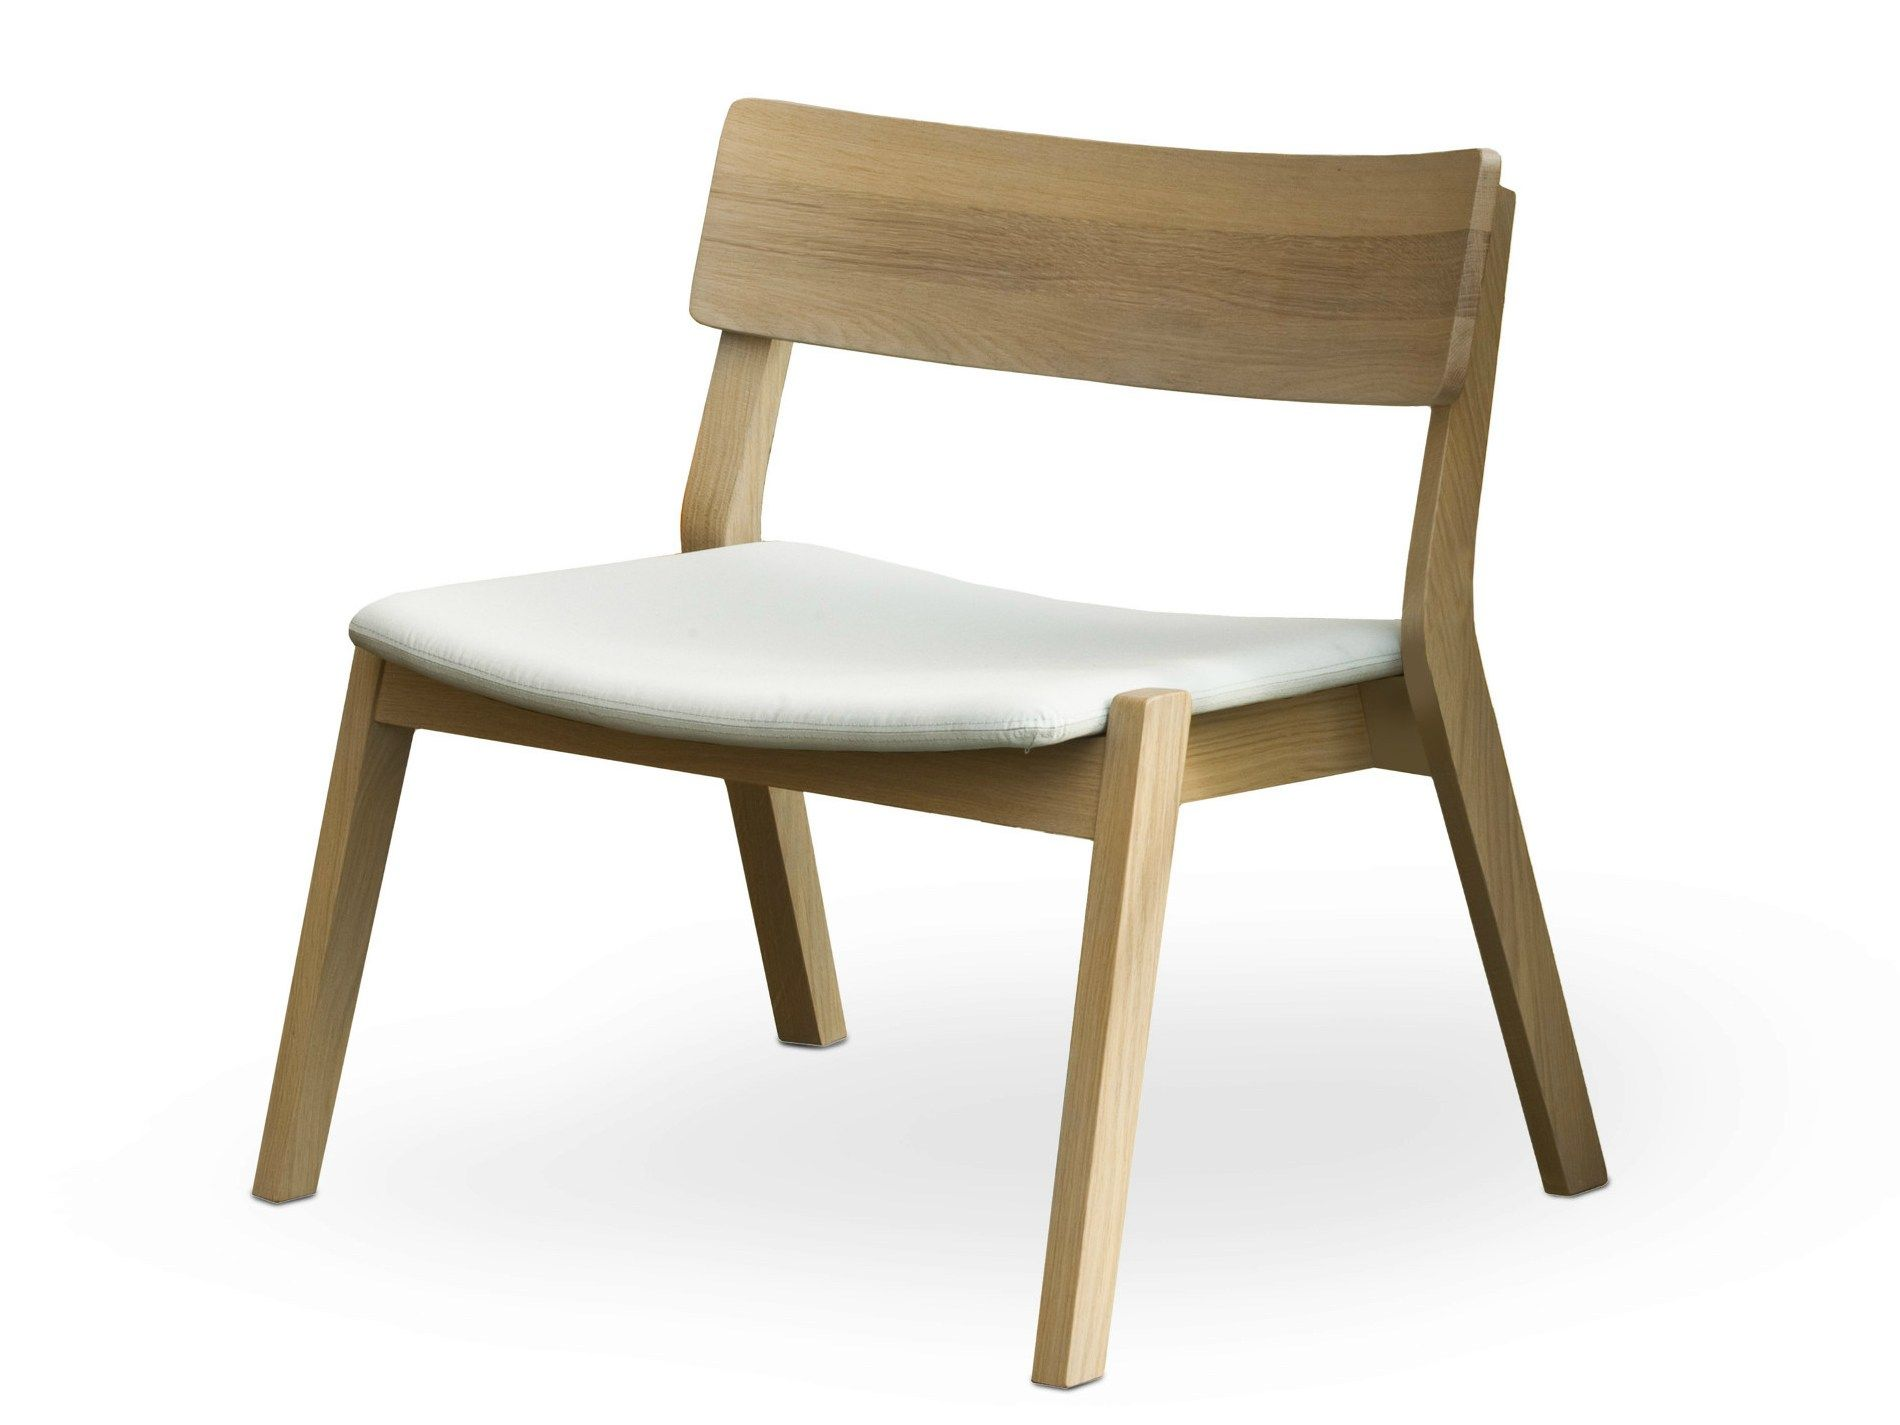 Wooden easy chair designs - Frame Easy Chair By Very Wood Design Paola Navone